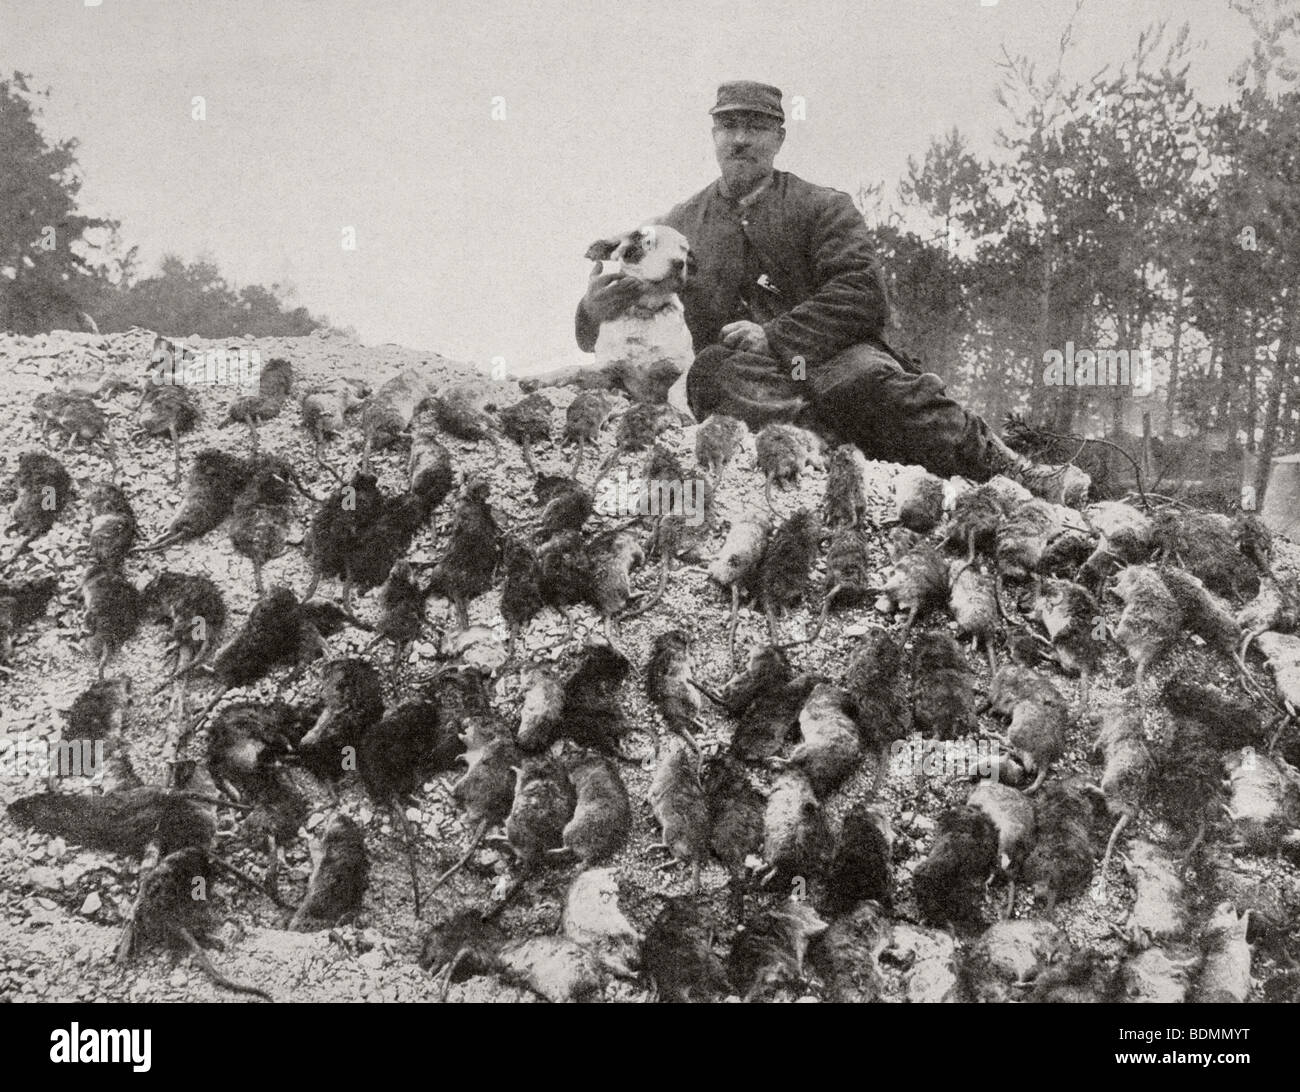 Ratcatcher with his catch from the trenches during First World War. - Stock Image